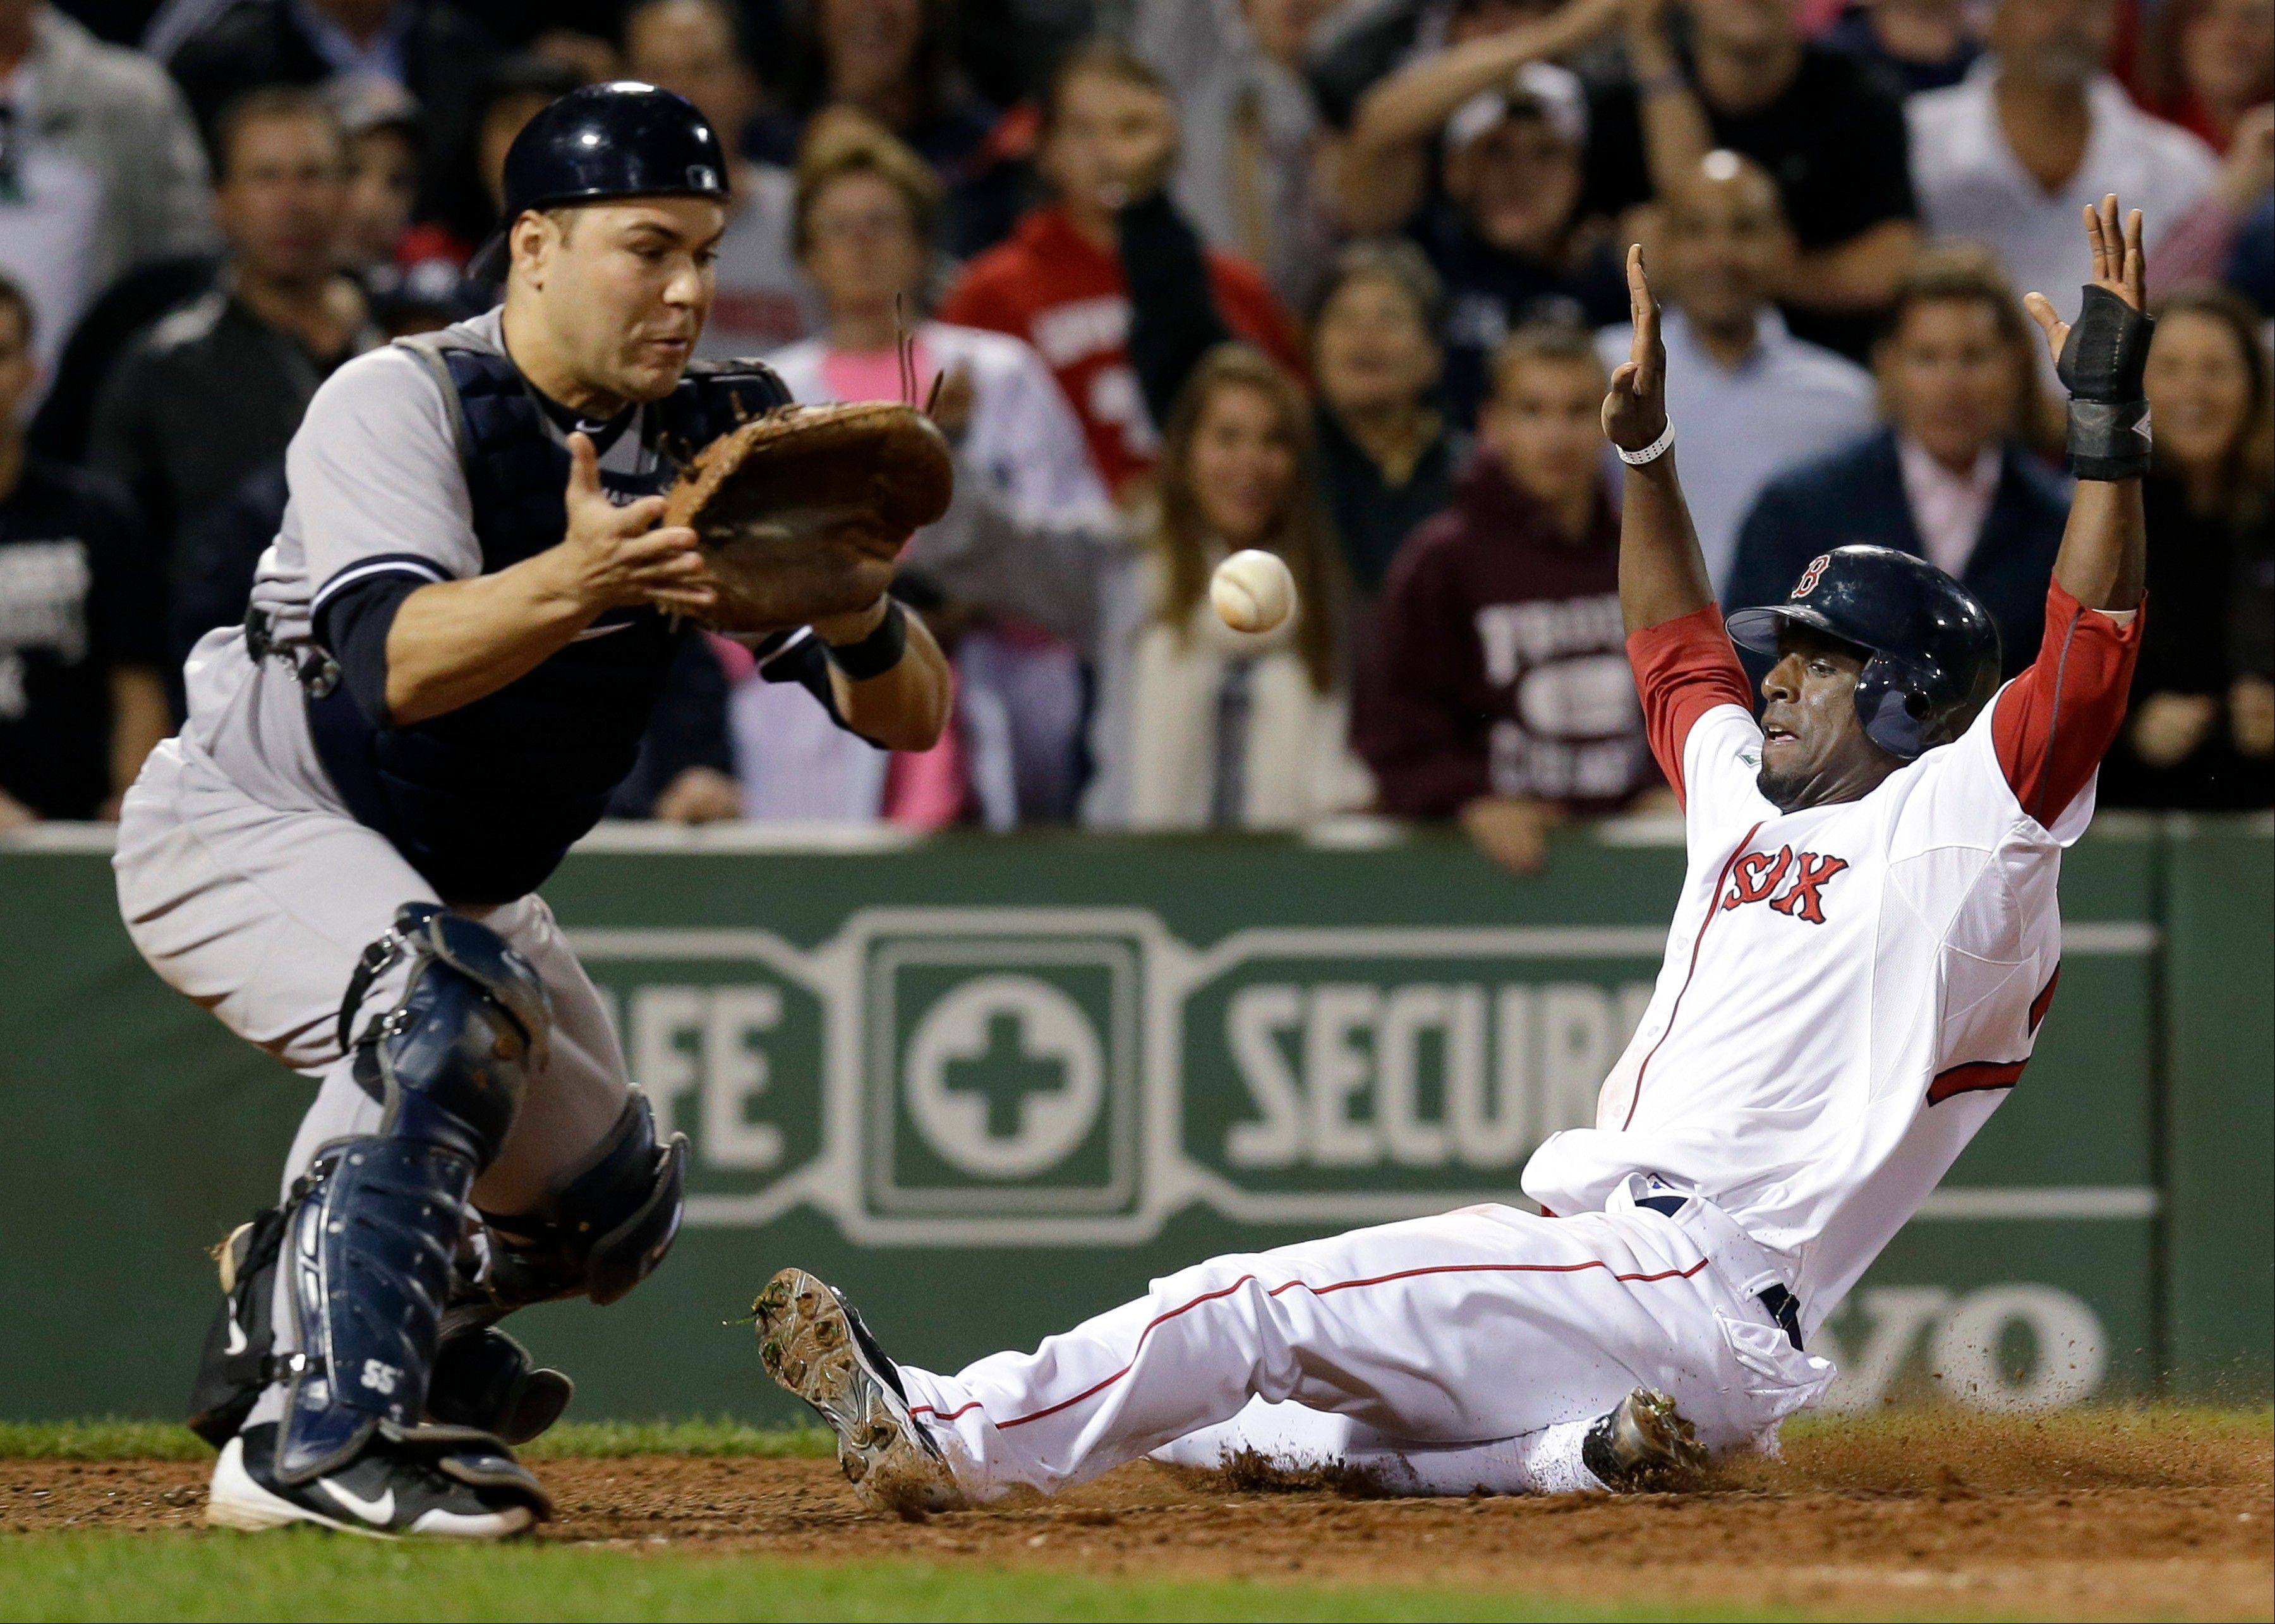 Boston's Pedro Ciriaco slides in to score the winning run on a single hit by Jacoby Ellsbury as New York Yankees catcher Russell Martin waits for the late throw Tuesday at Fenway Park.